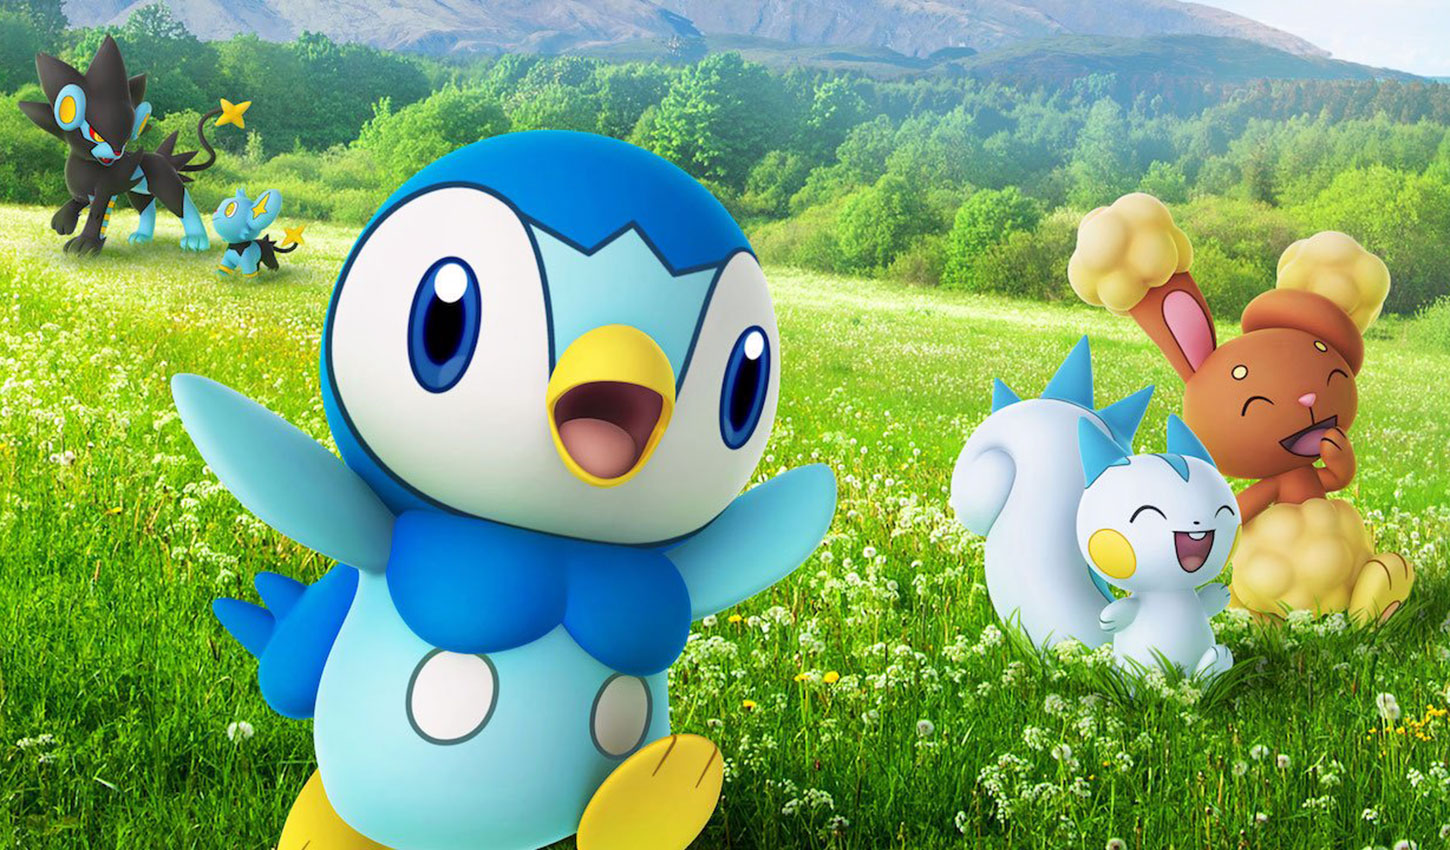 The Next Community Day For Pokemon GO Will Be On January 19, Piplup Steps To The Front Following In The Footsteps Of The Other Starters